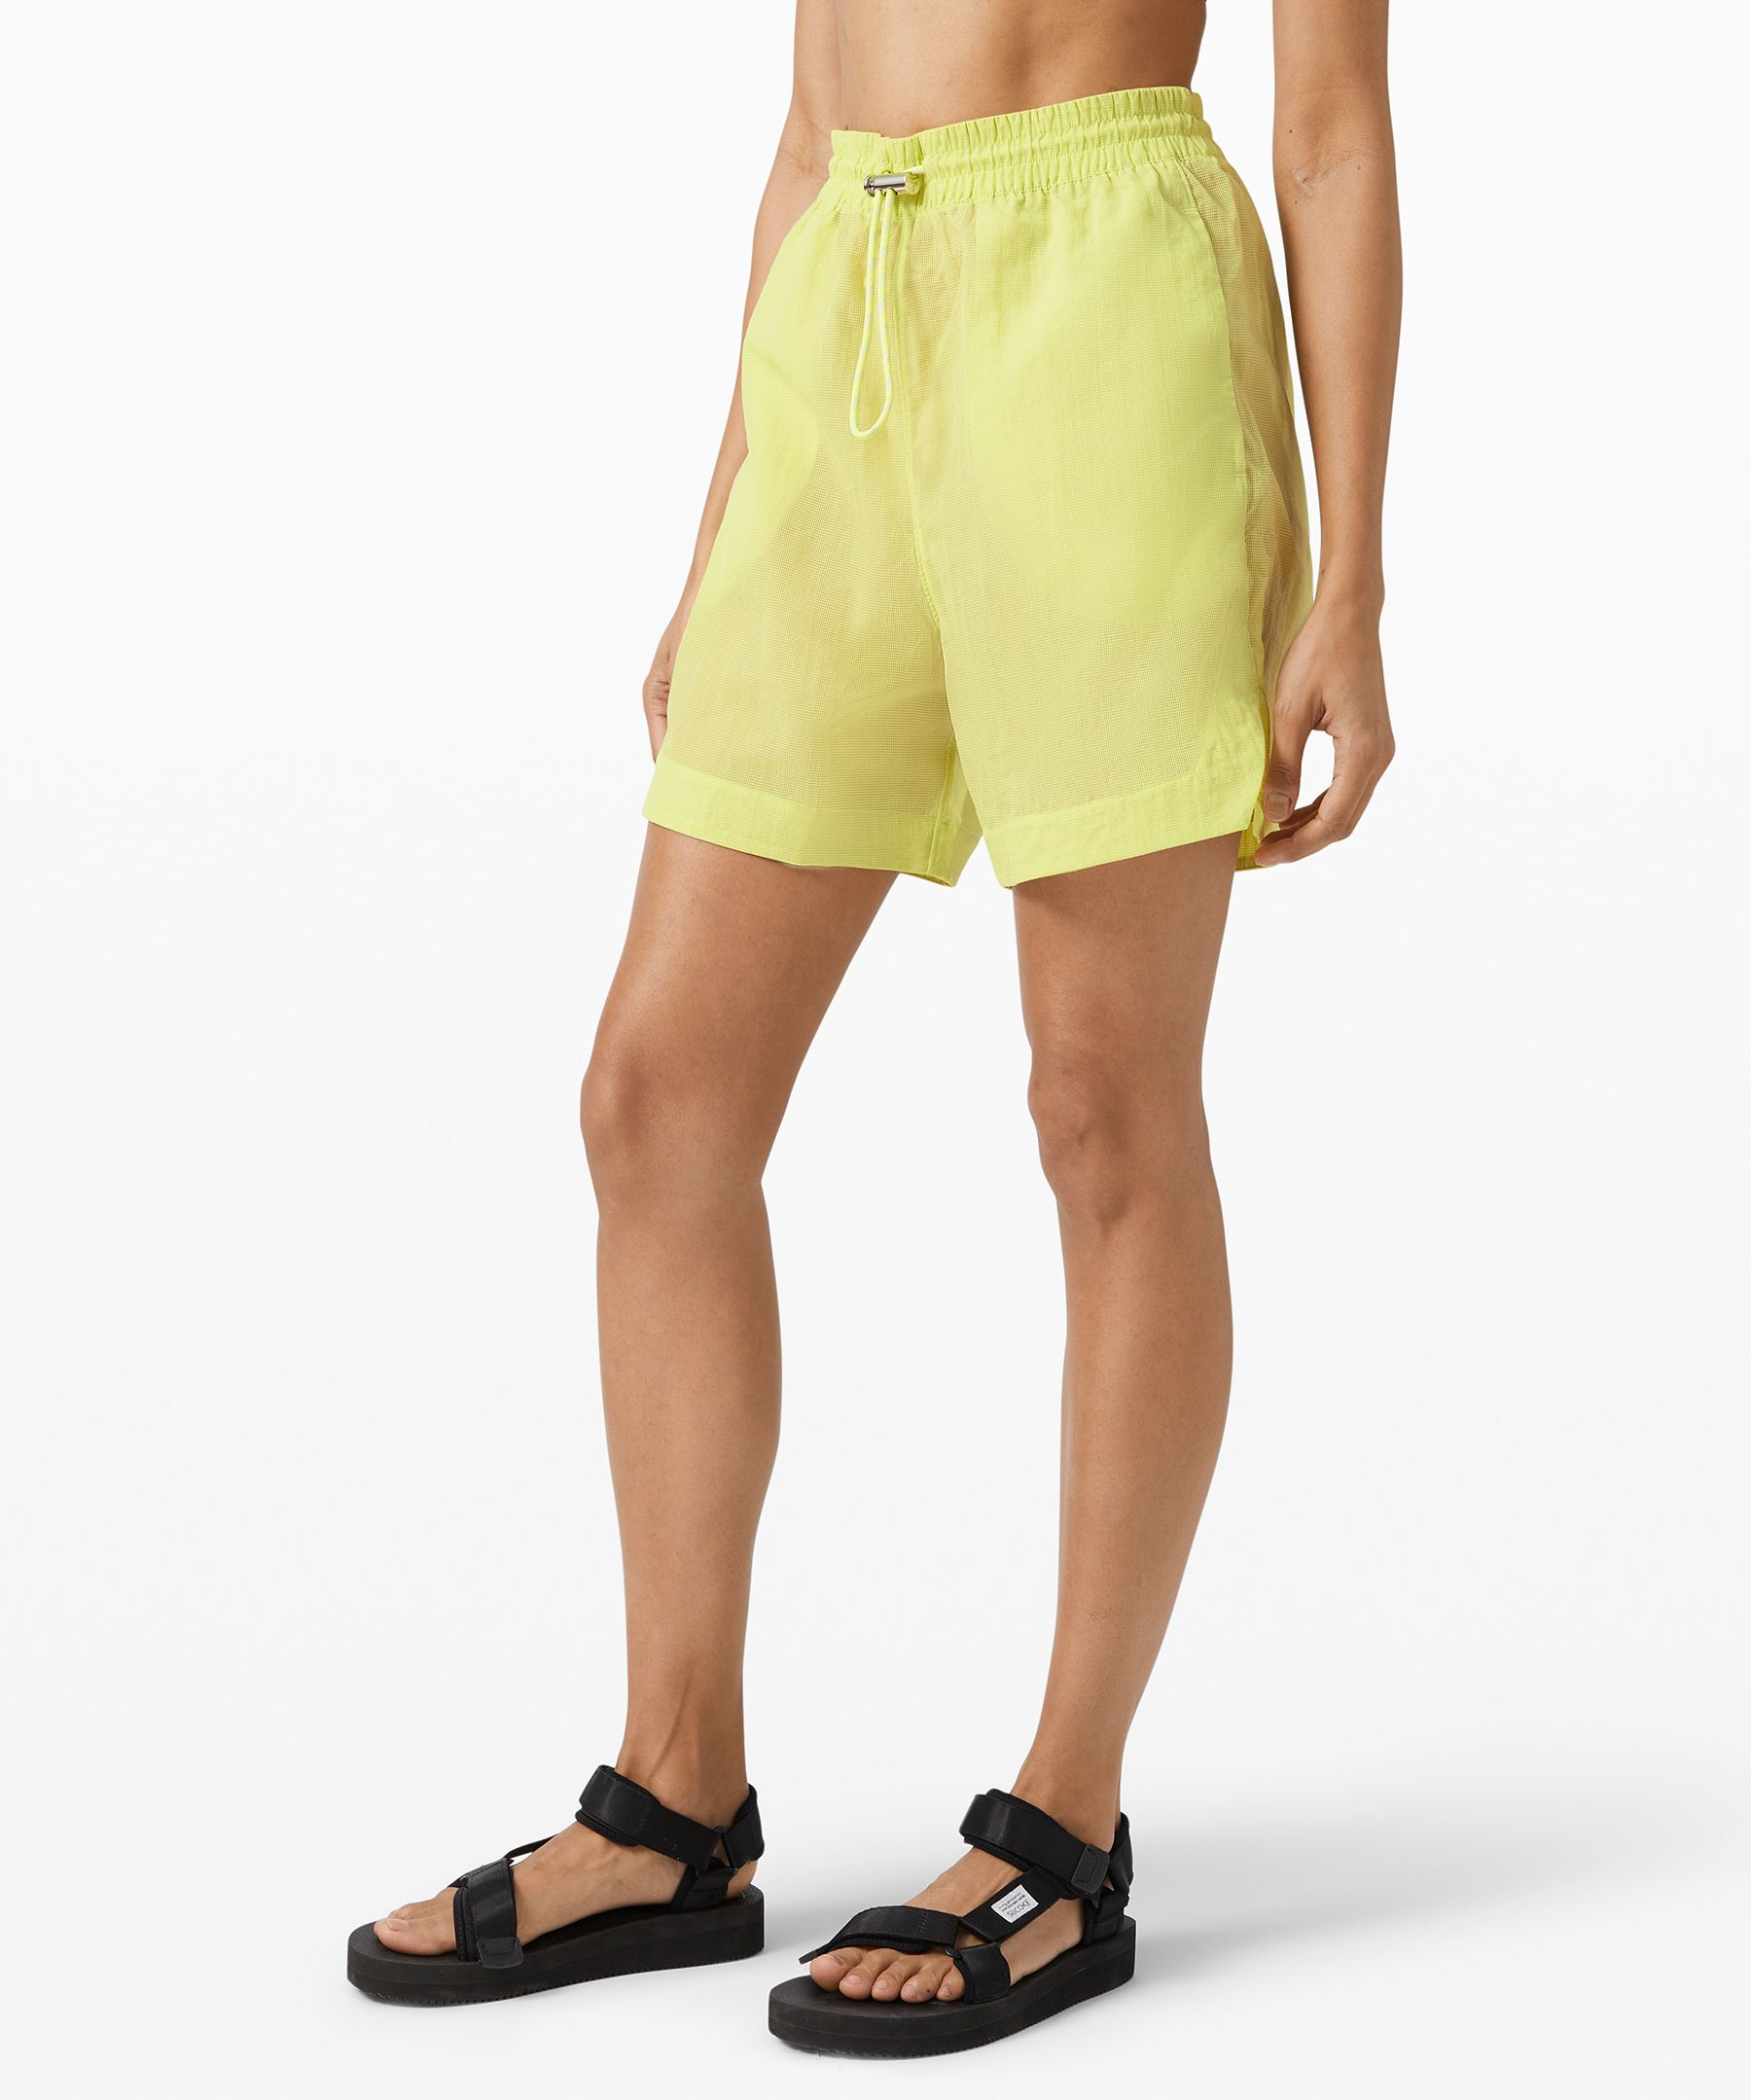 Breathe new life into your  post-workout wardrobe in these  sheer shorts. They\'re  constructed entirely from  water-repellent Mesh fabric  for light weather protection  and maximum airflow that won\'t  cling to sweaty skin.